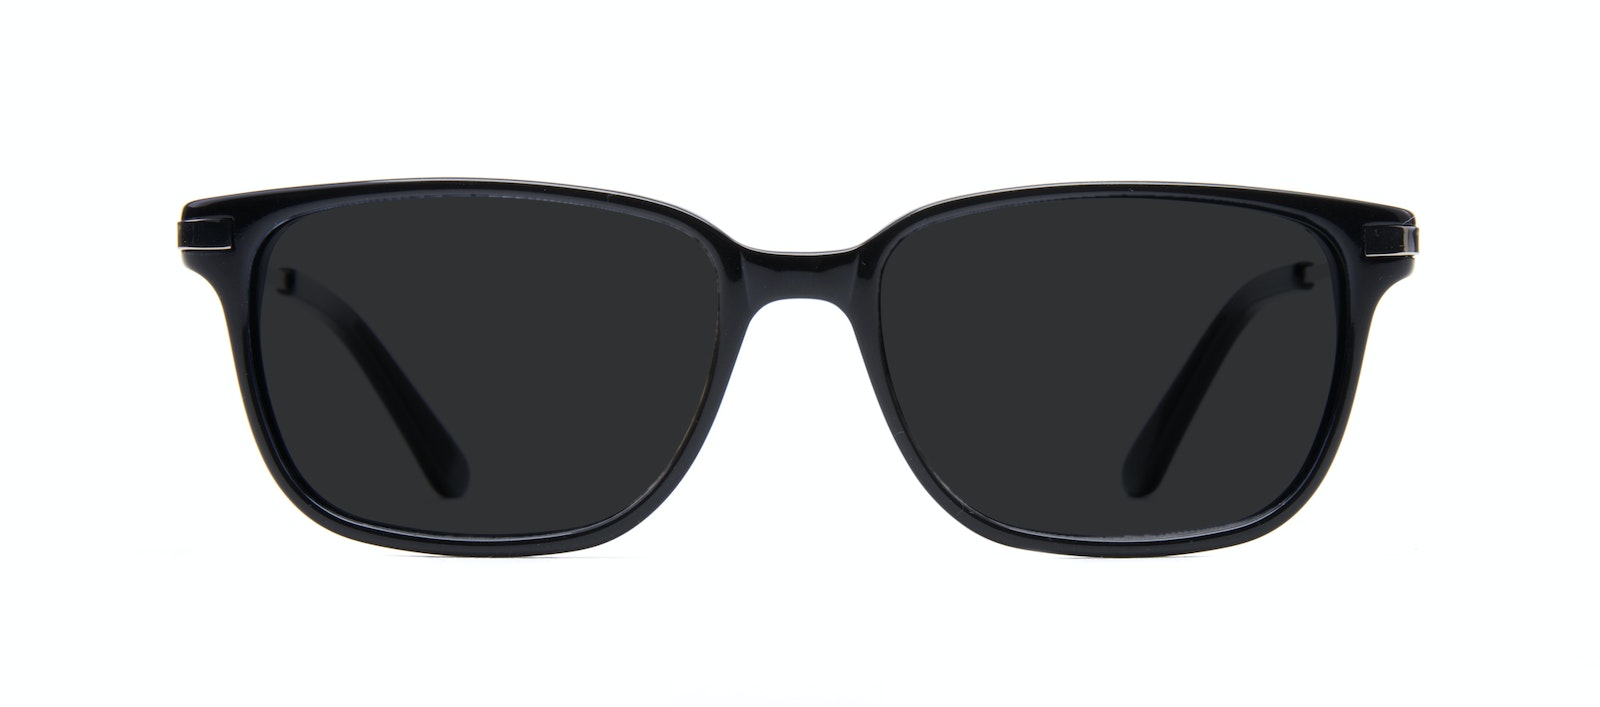 Affordable Fashion Glasses Rectangle Sunglasses Men Trade Black Front